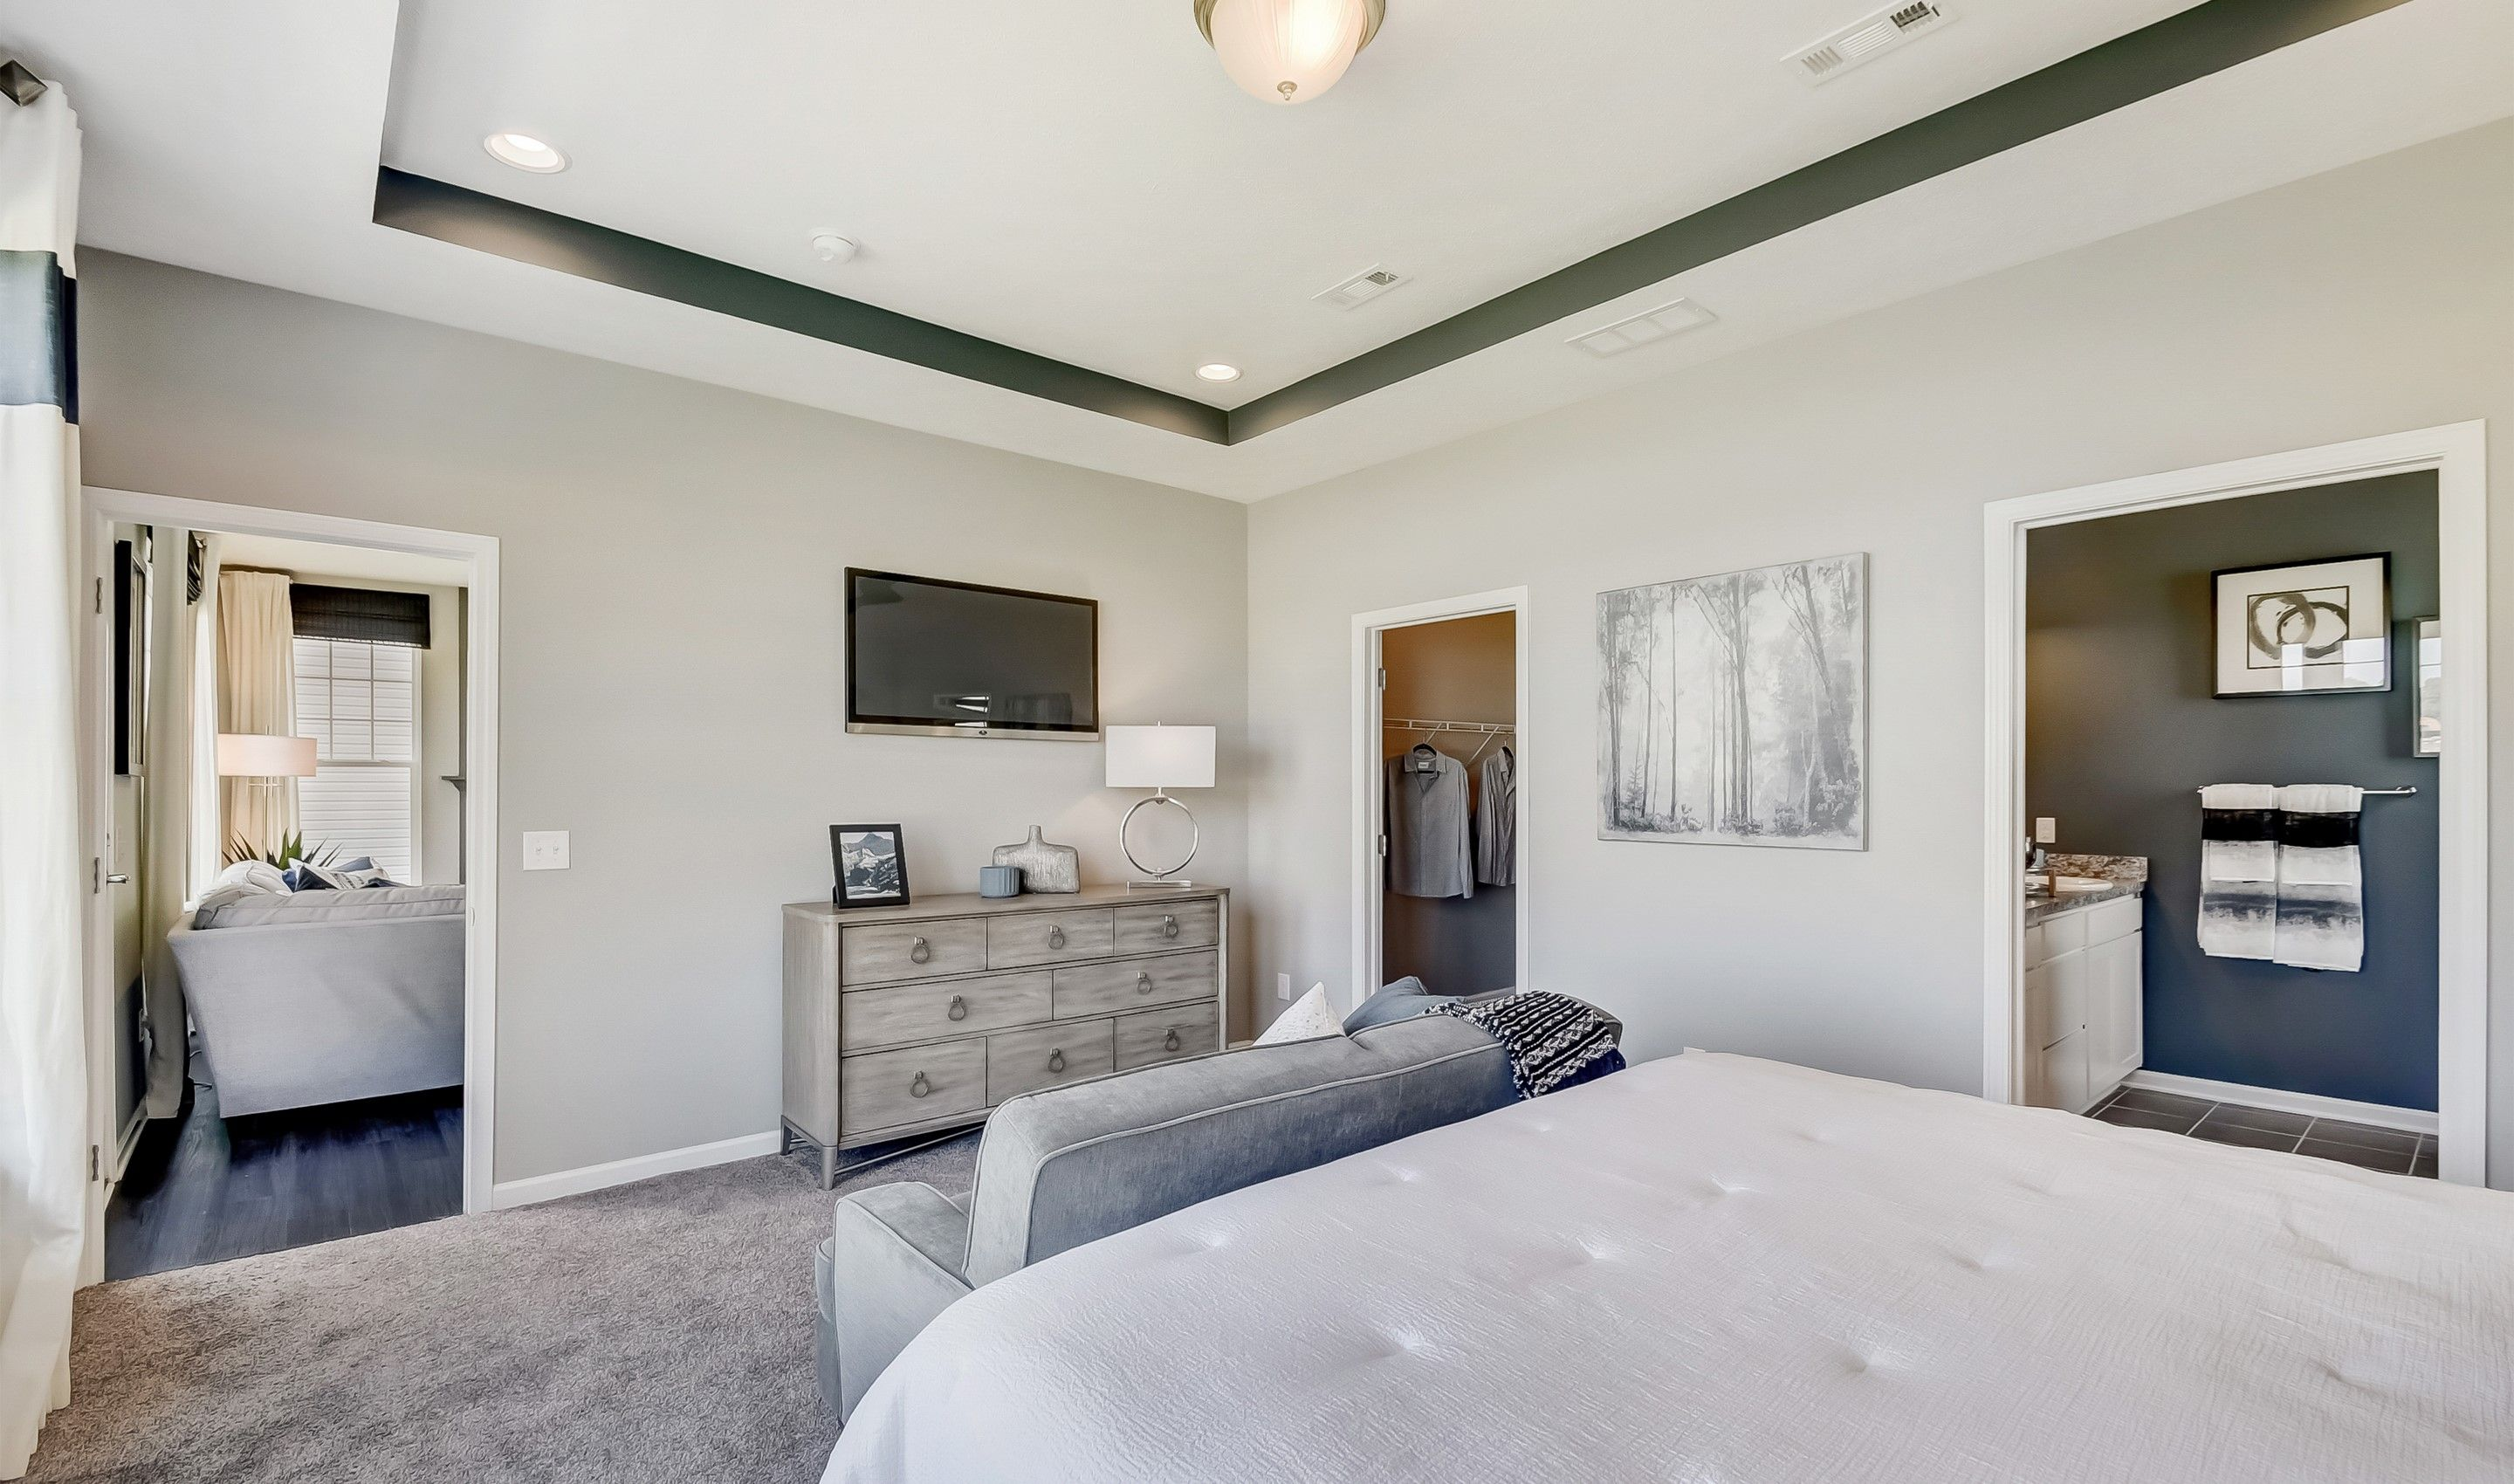 Bedroom featured in the Monterey II By K. Hovnanian's® Four Seasons in Cleveland, OH